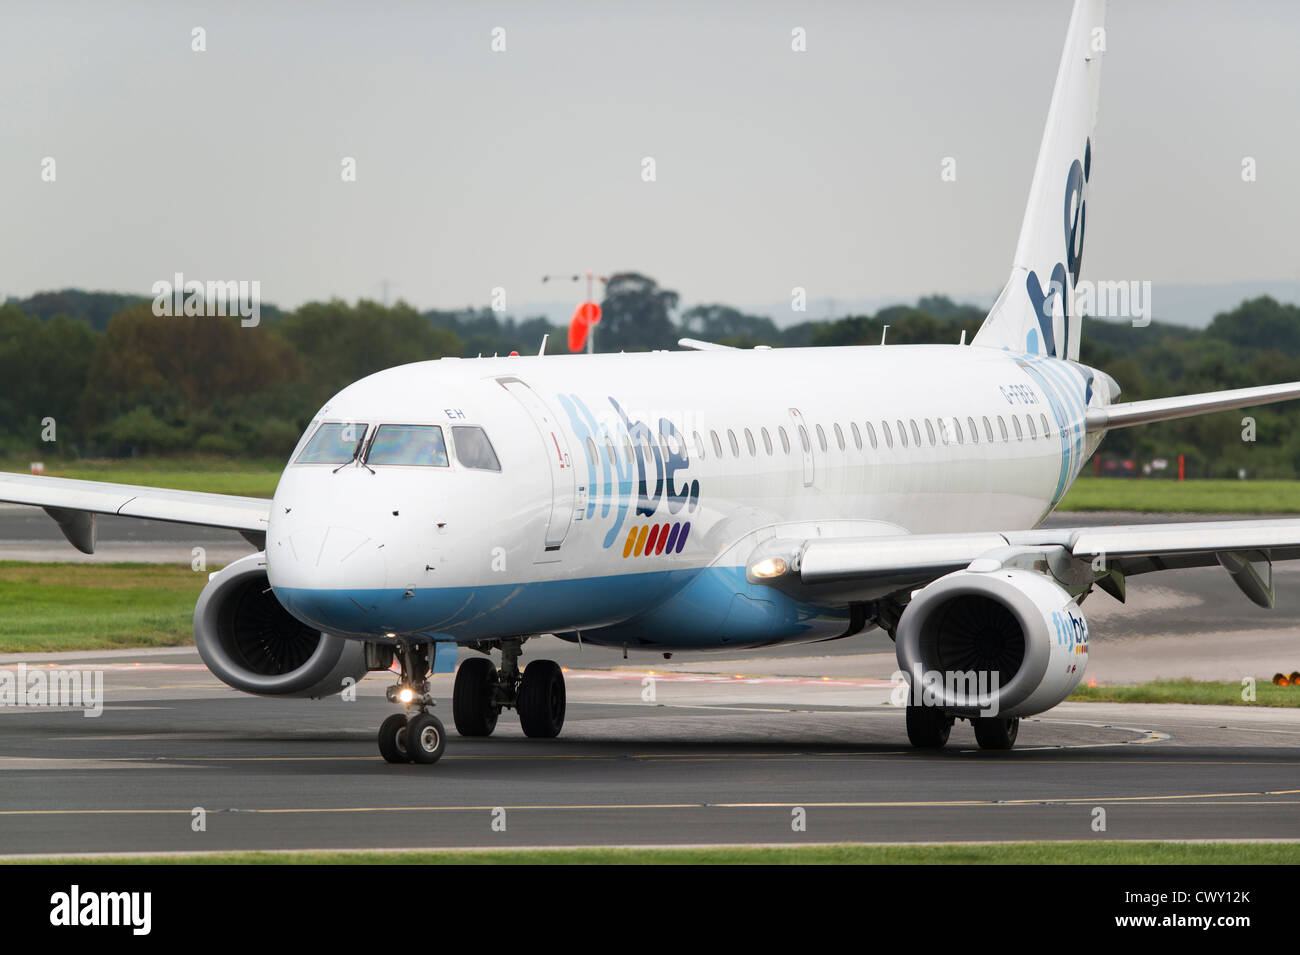 A Flybe Embraer 190 taxiing on the runway of Manchester International Airport (Editorial use only) - Stock Image